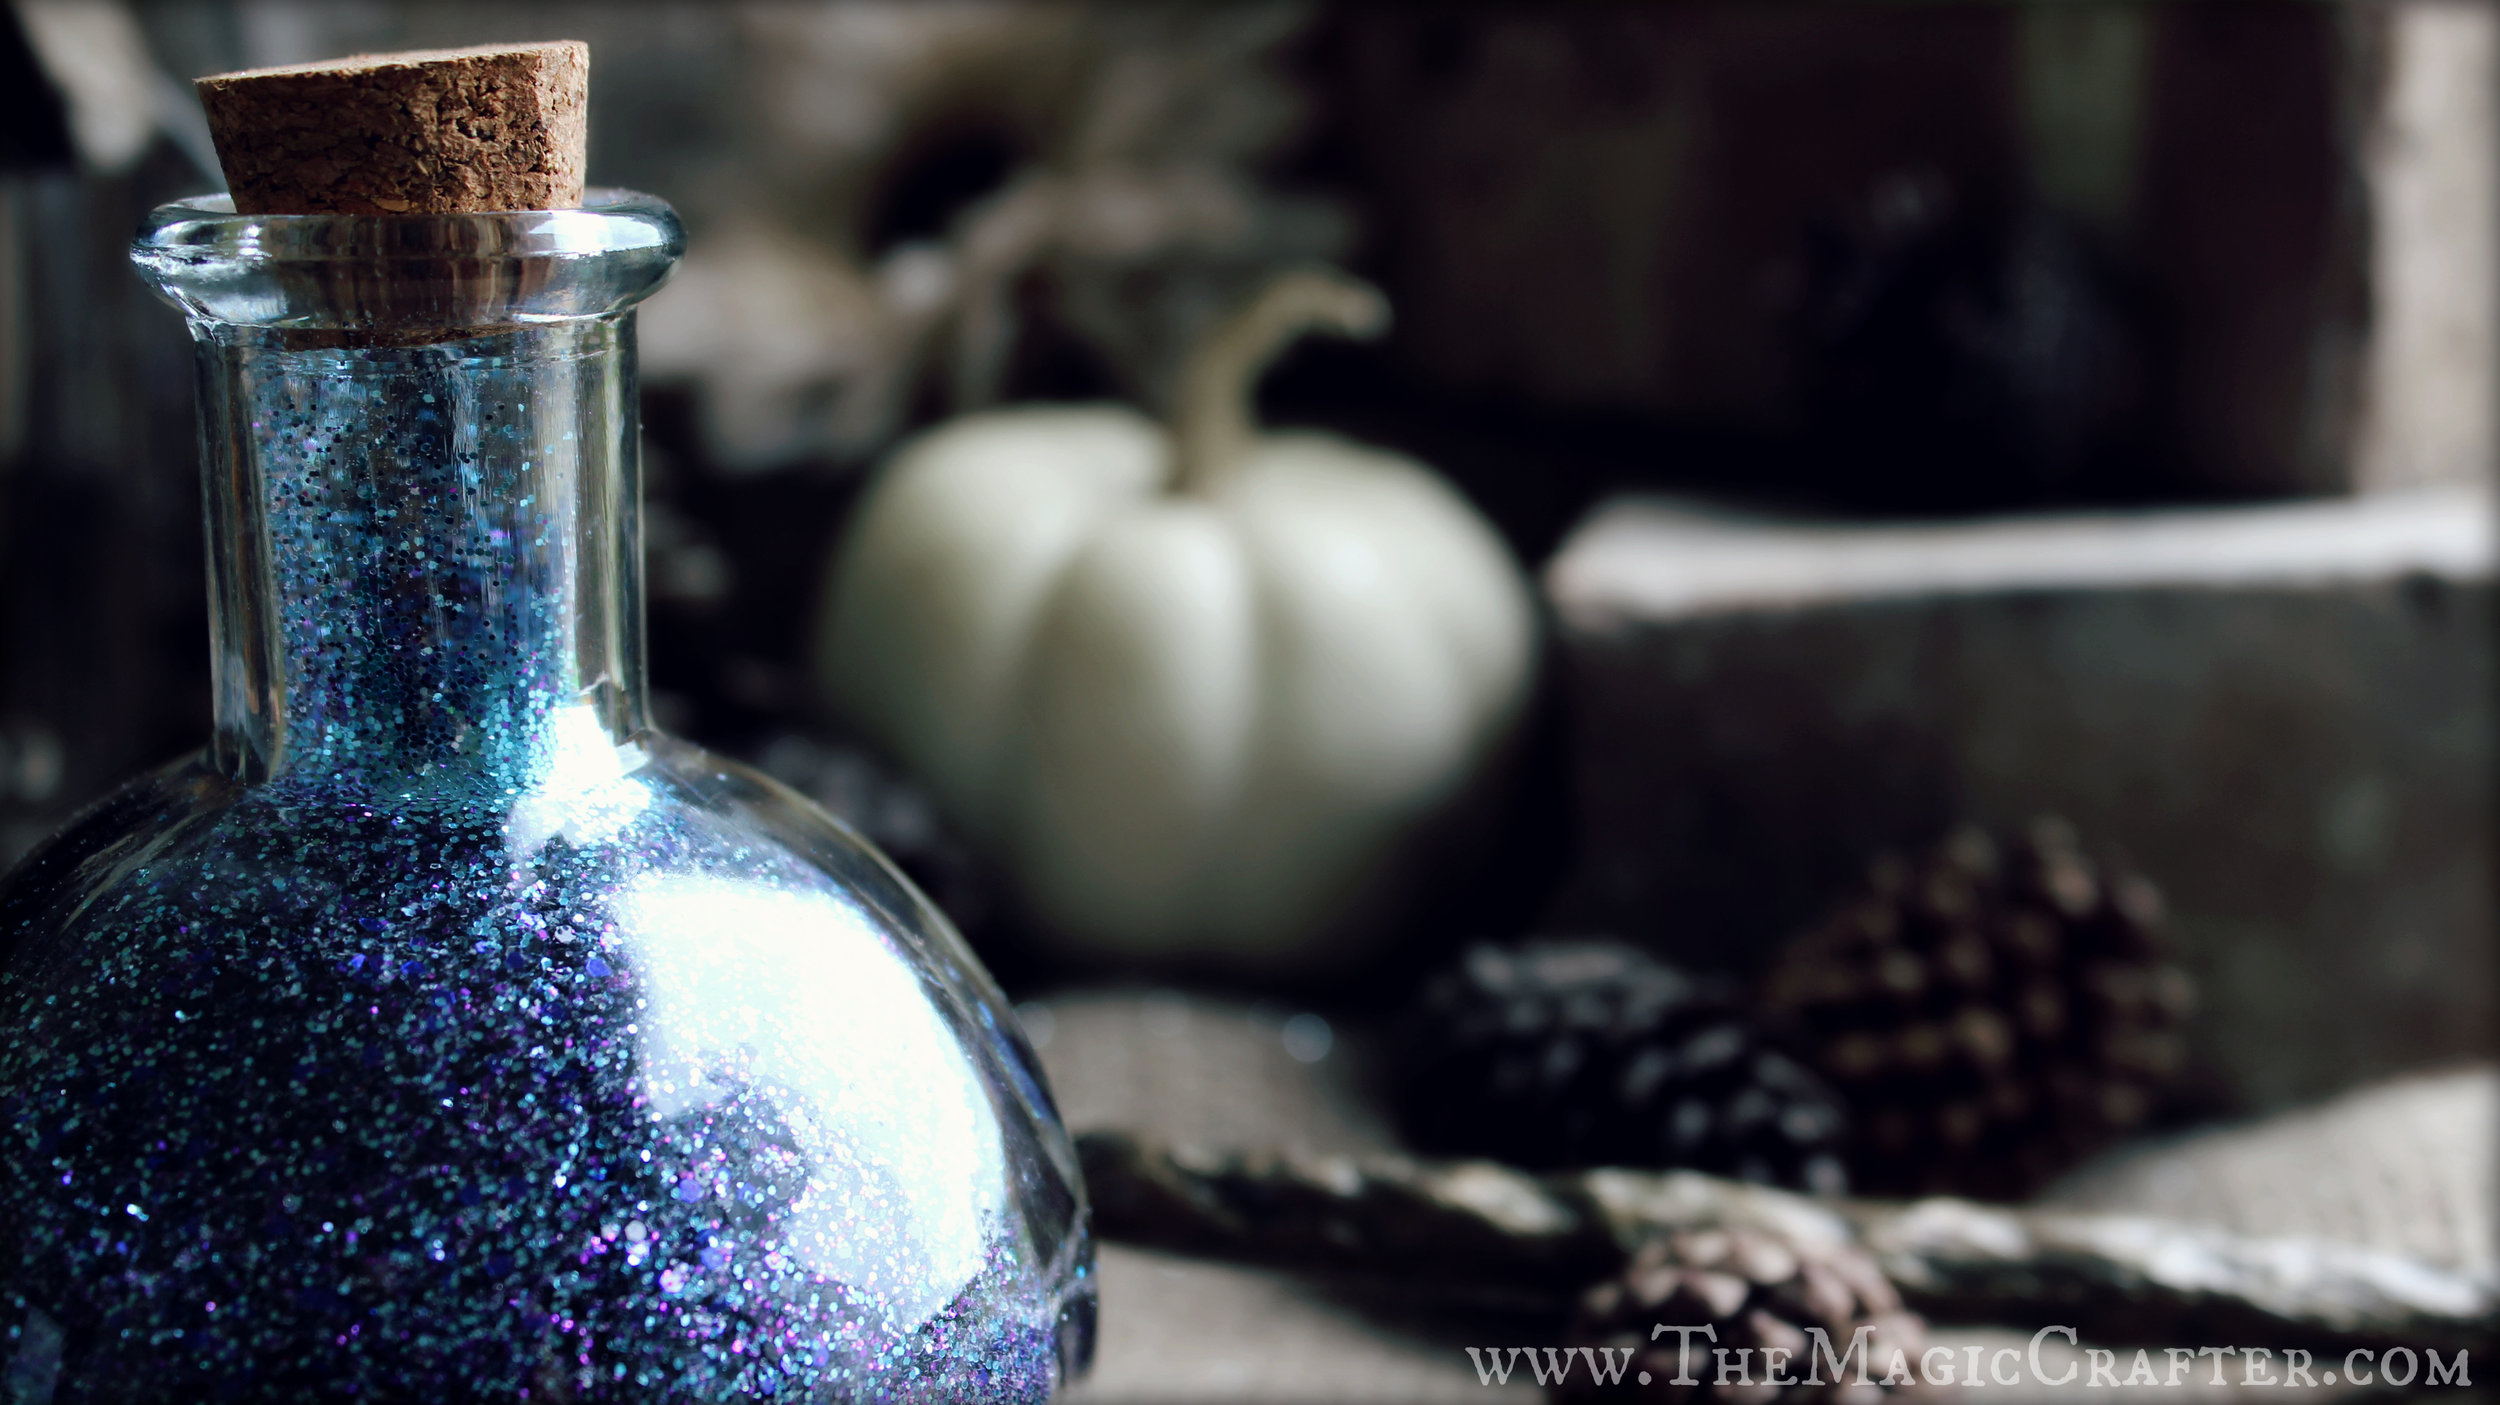 This fairydust blend is perfect for any wicked faeries or mischievous pixies out there. It can work as a costume accessory (take care with the glass!) or as an enchanting Halloween prop for the home.